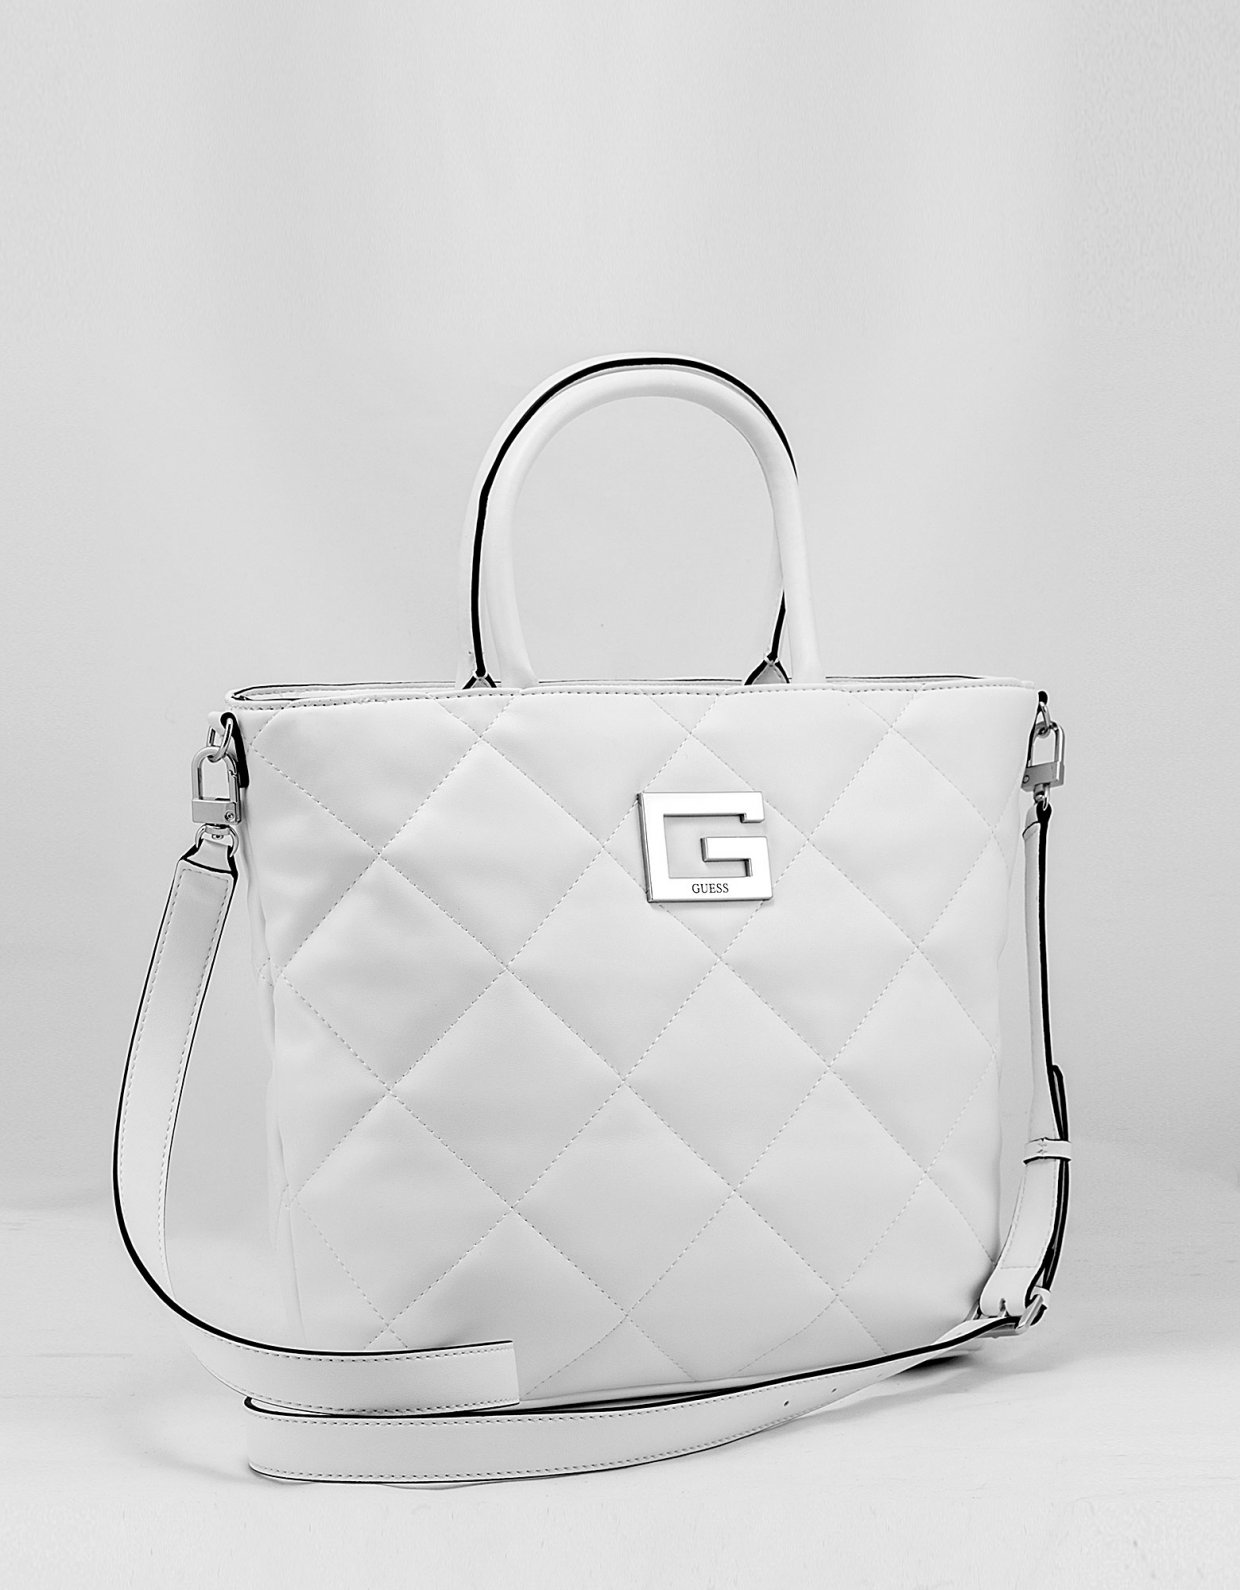 GUESS Brightside quilted tote bag white